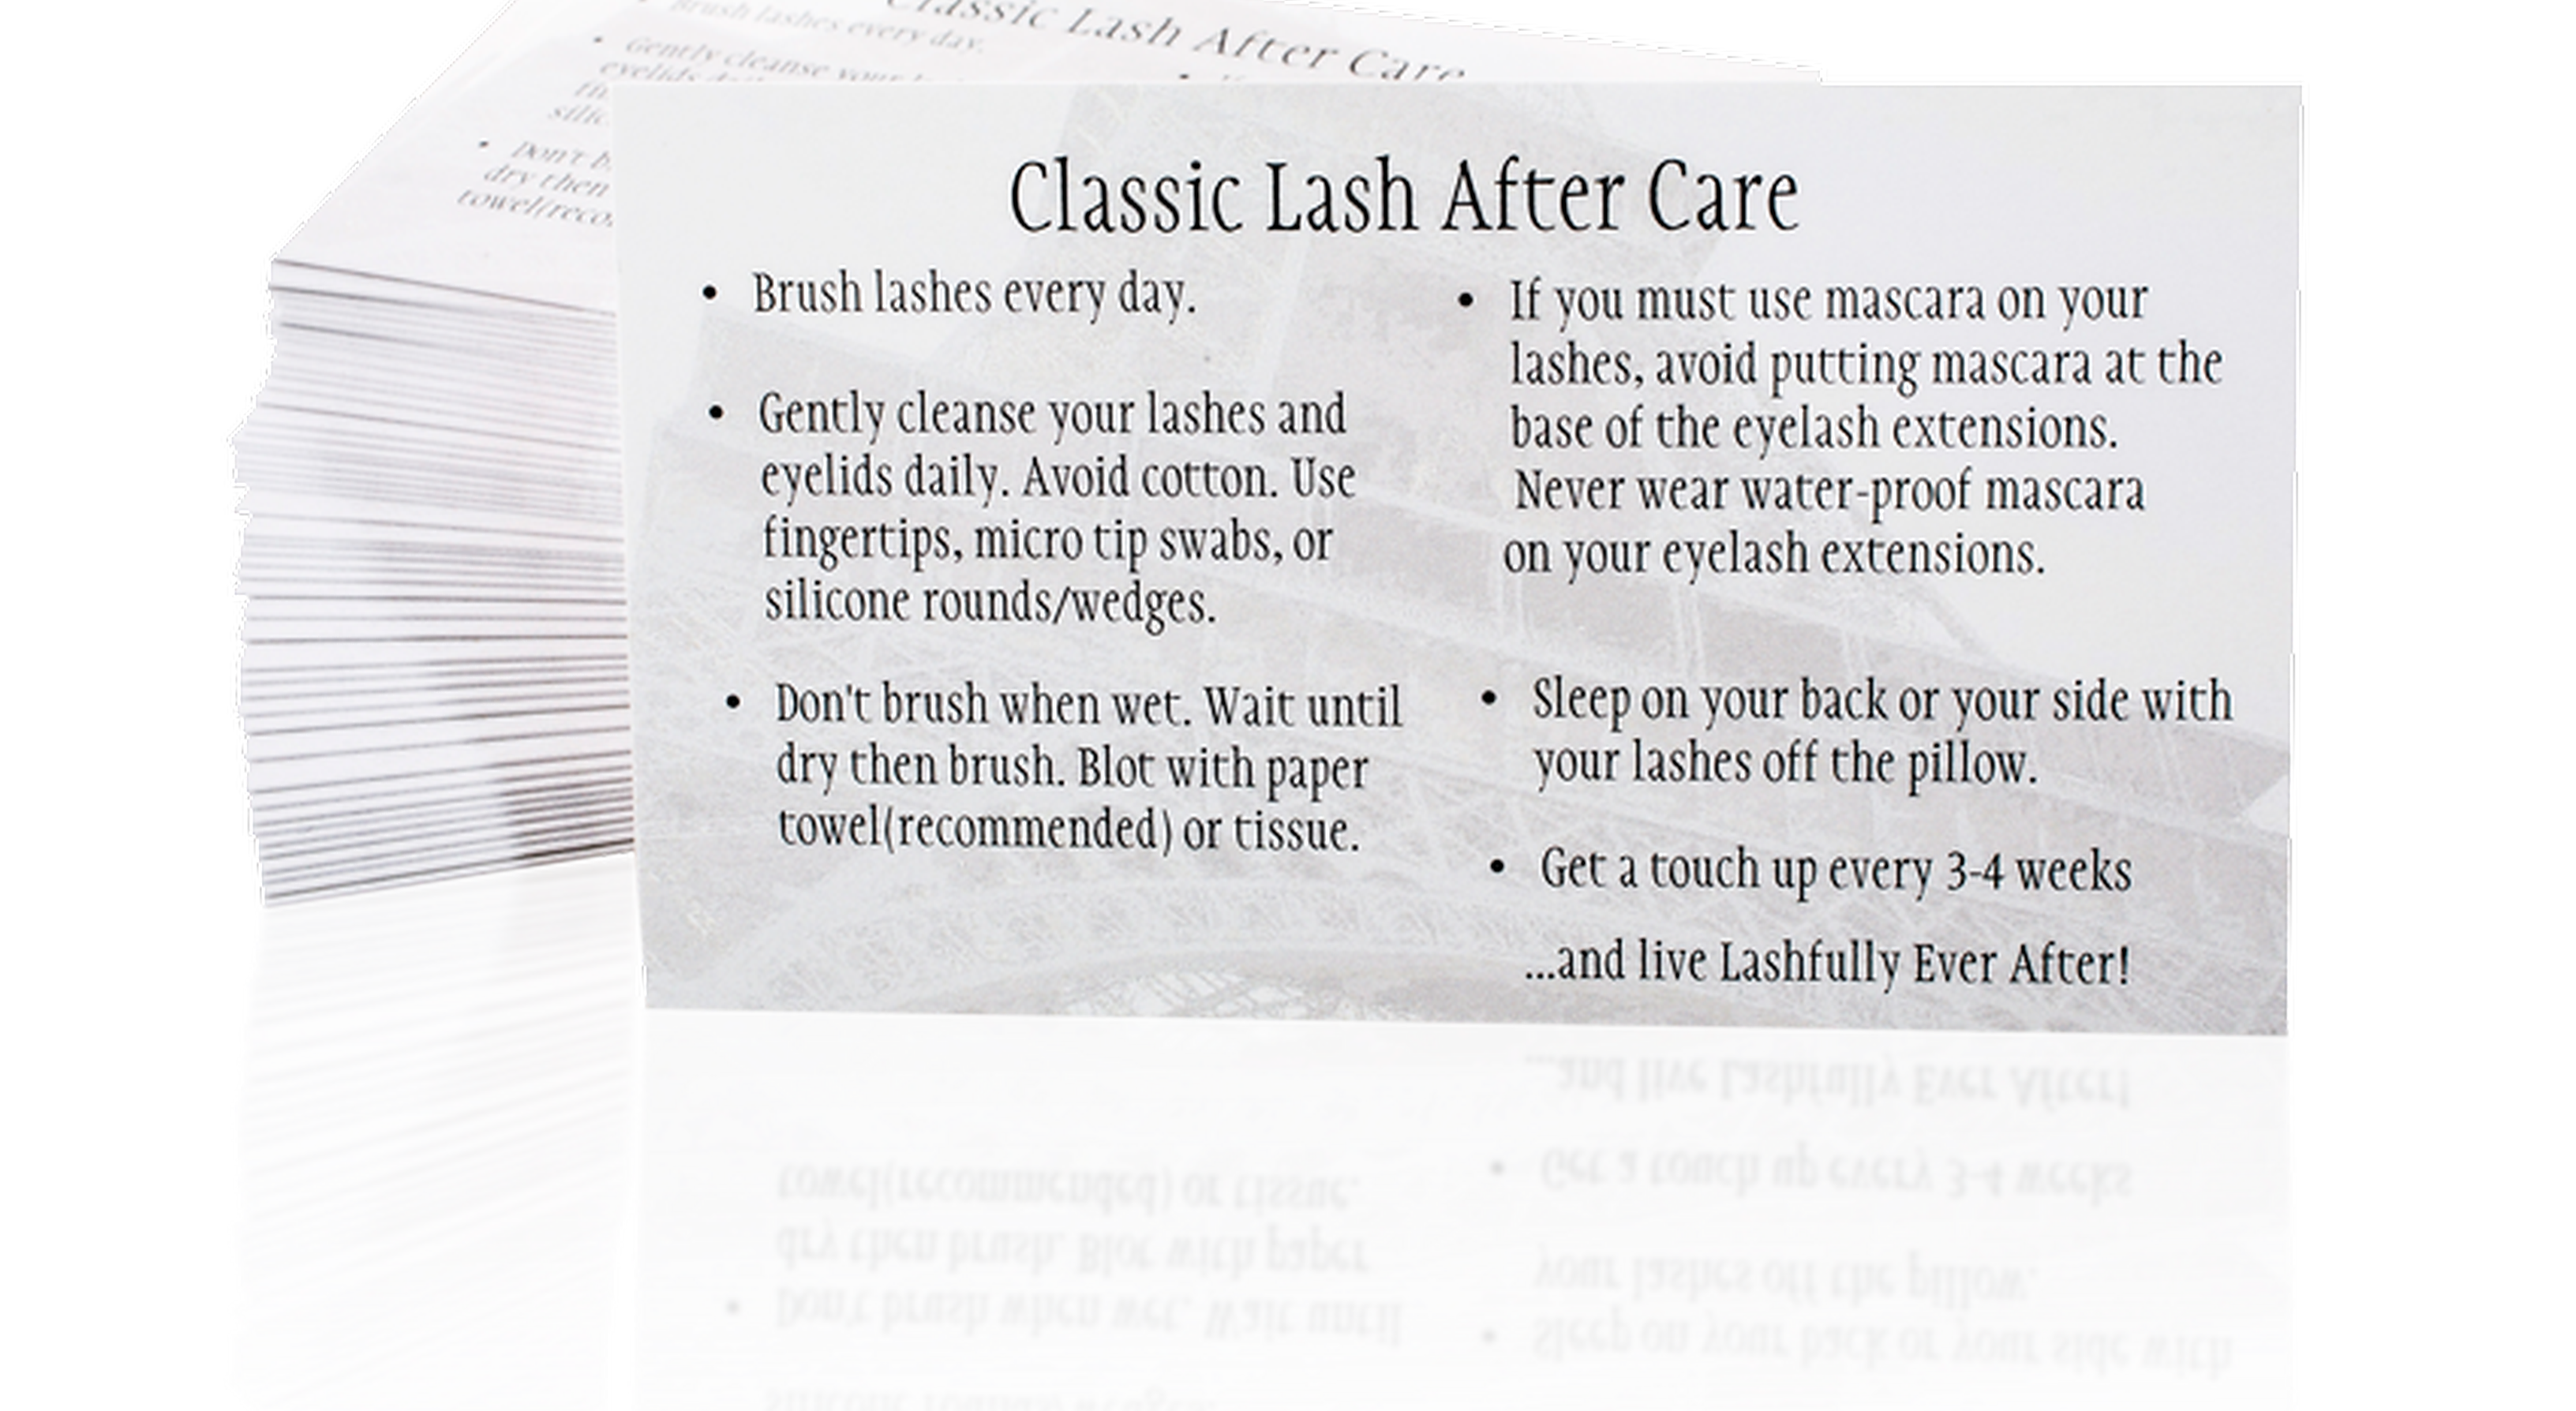 classic lash after care